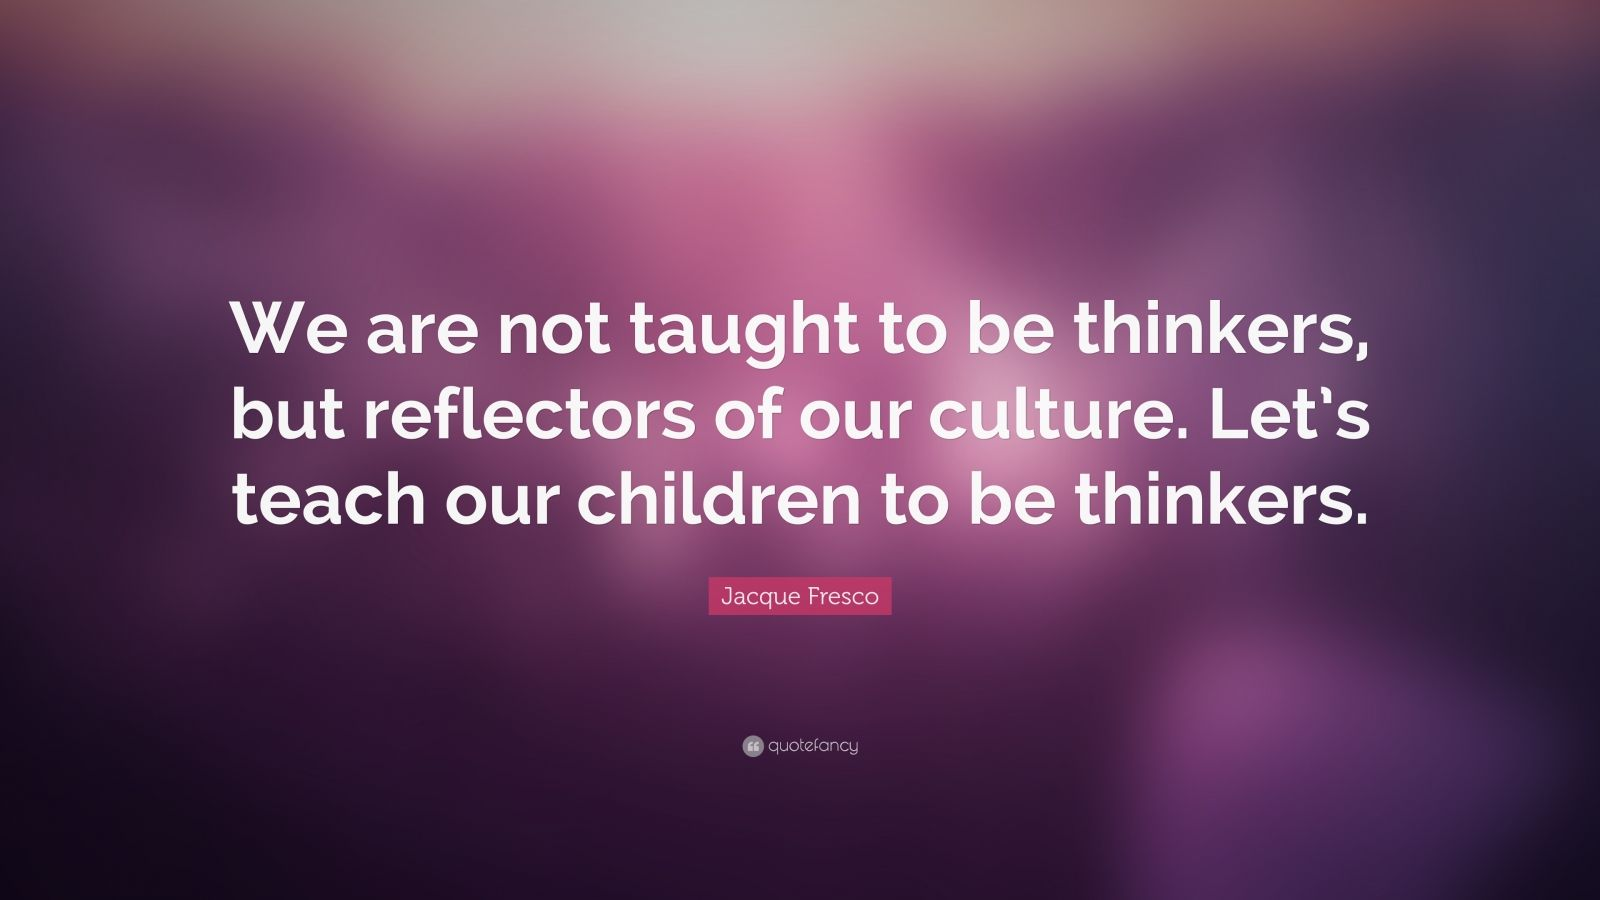 """Jacque Fresco Quote: """"We are not taught to be thinkers, but reflectors of our culture. Let's teach our children to be thinkers."""""""